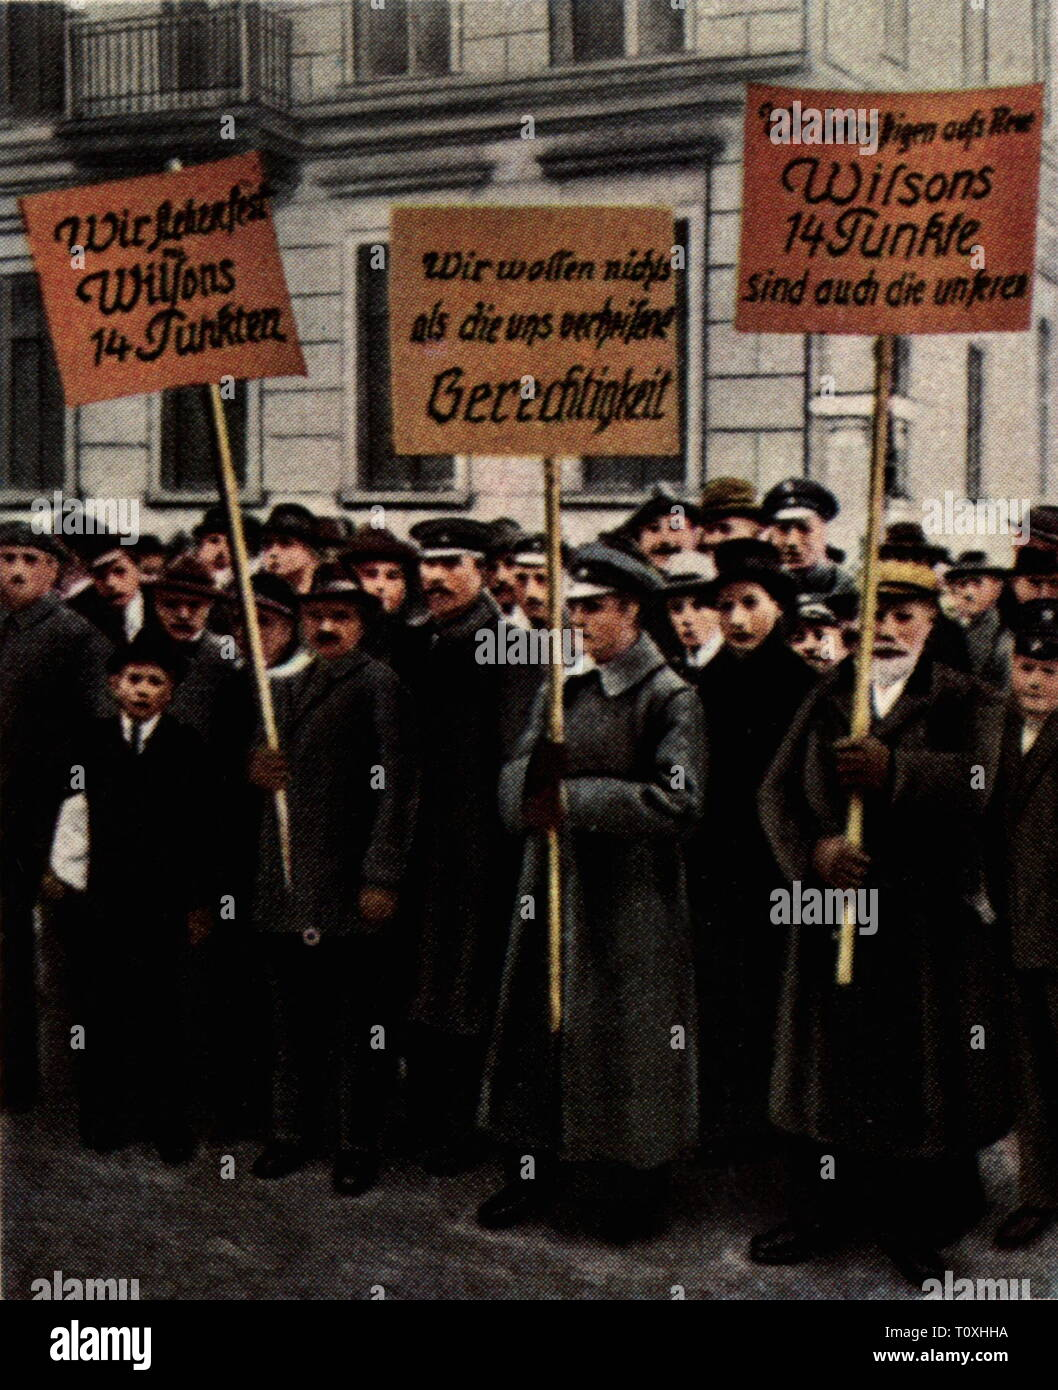 politics, demonstrations, demonstration for the Fourteen Points of American president Woodrow Wilson, Germany, November 1918, coloured photograph, cigarette card, series 'Die Nachkriegszeit', 1935, 14 points program, sign, signs, signboard, signboards, peace, German Reich, Third Reich, people, 20th century, 1930s, politics, policy, demonstration, demo, demonstrations, demos, president, presidents, coloured, colored, post war period, post-war period, post-war years, post-war era, historic, historical, Additional-Rights-Clearance-Info-Not-Available - Stock Image